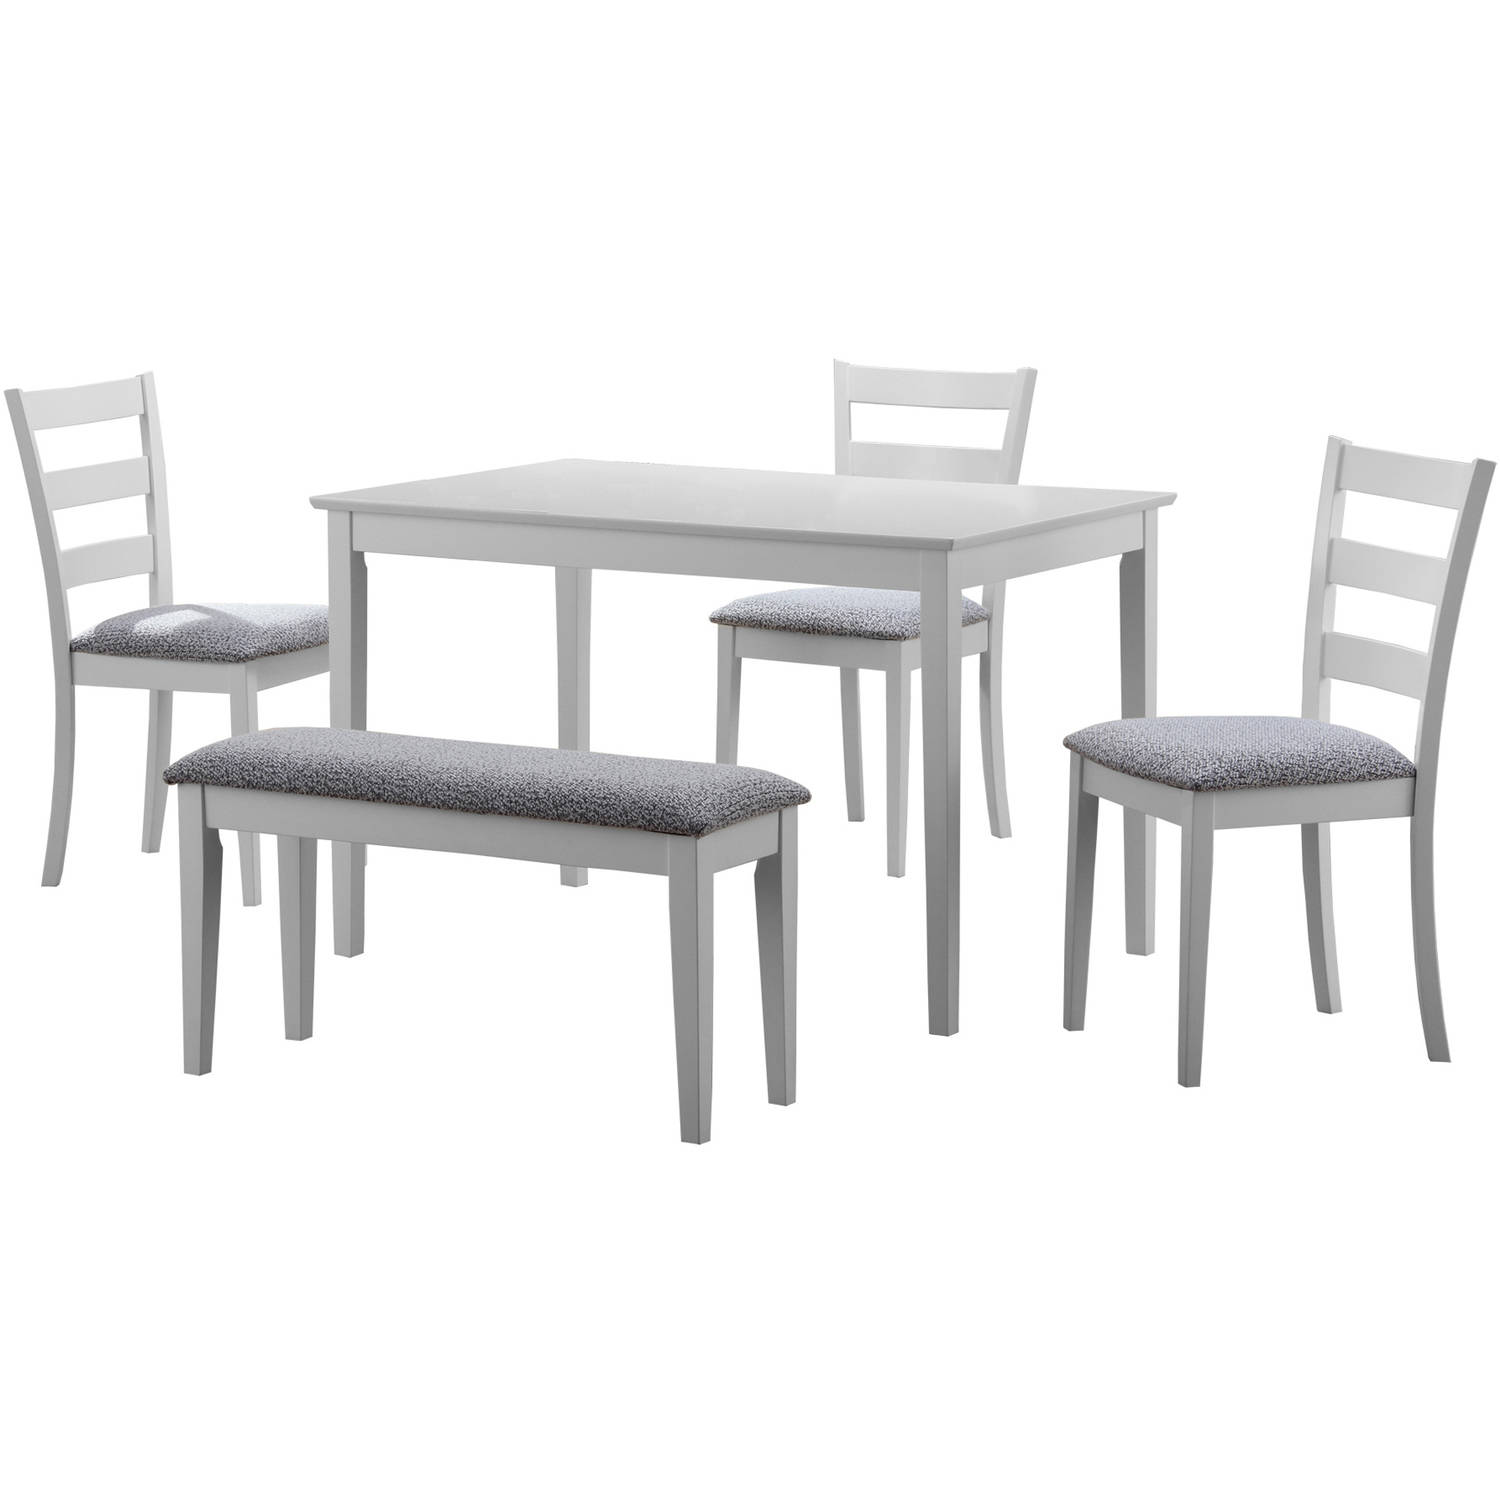 Delightful Monarch Dining Set 5Pcs Set / White Bench And 3 Side Chairs